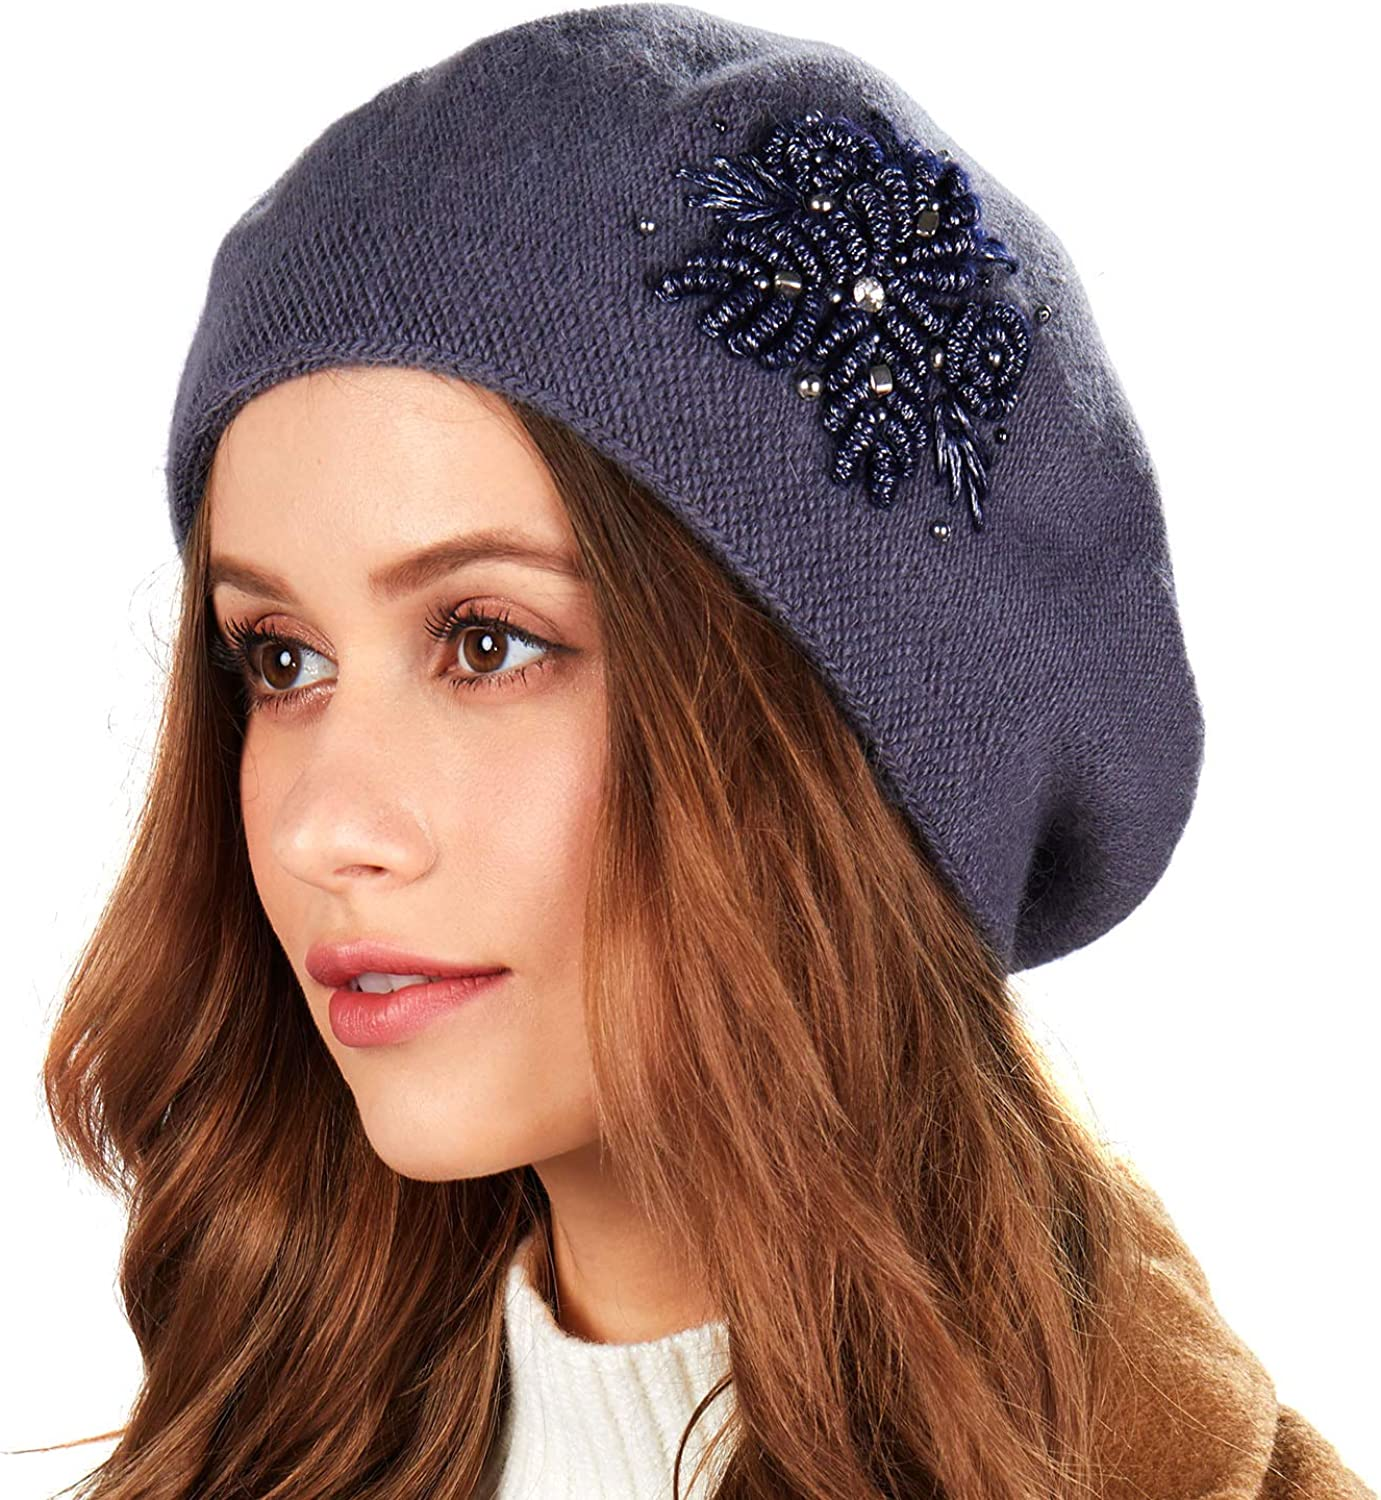 Beret Hat for Women Winter Embroidered French Style Beret Beanie Cap Rabbit Fur Blend Yarn Artist Hat